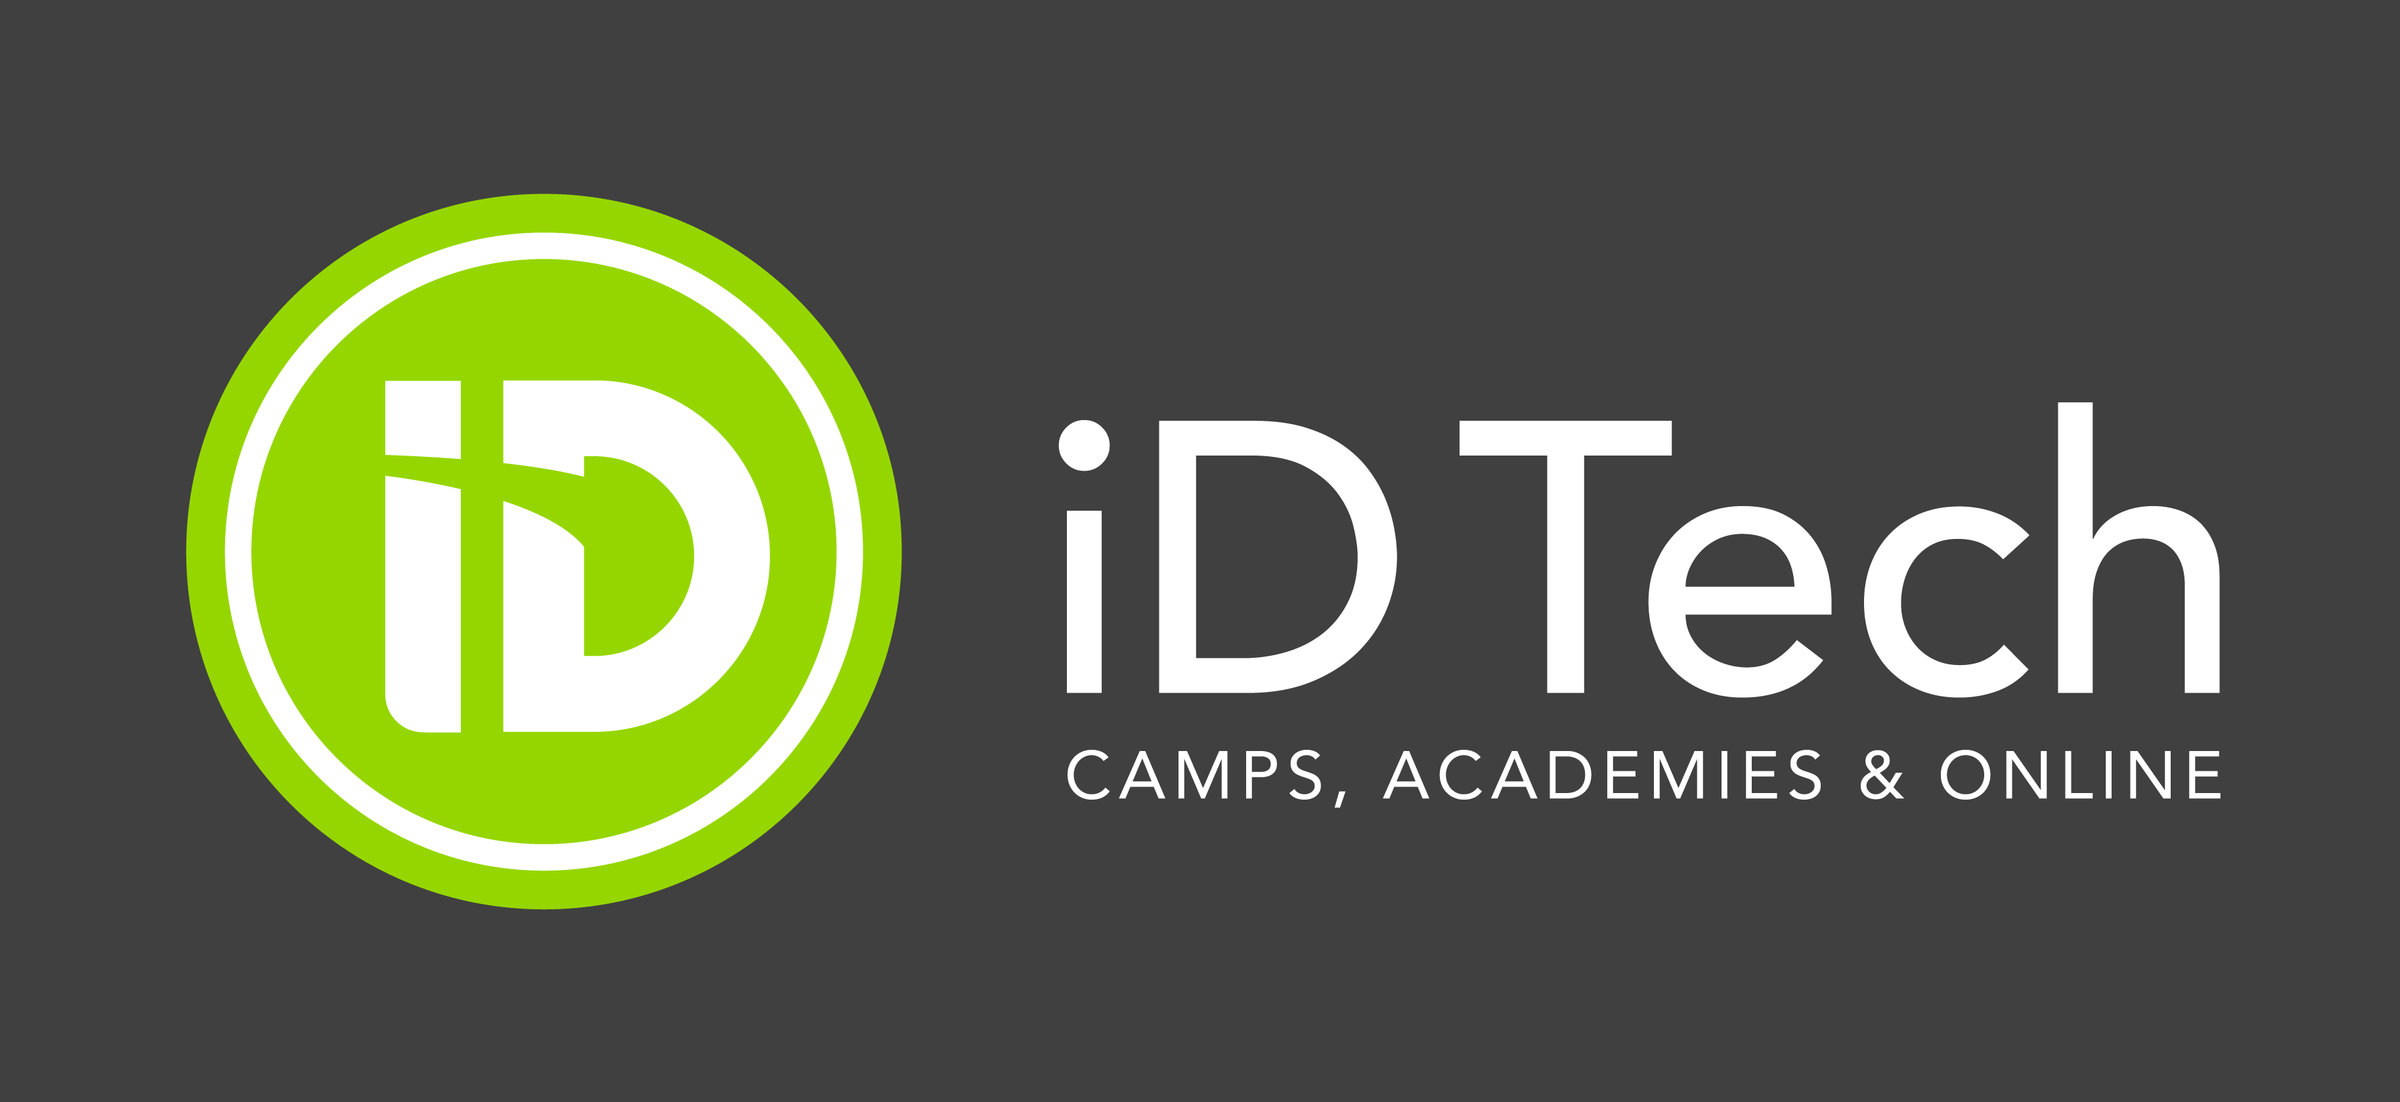 iD Tech Camps: #1 in STEM Education - Held at Washington University in St. Louis